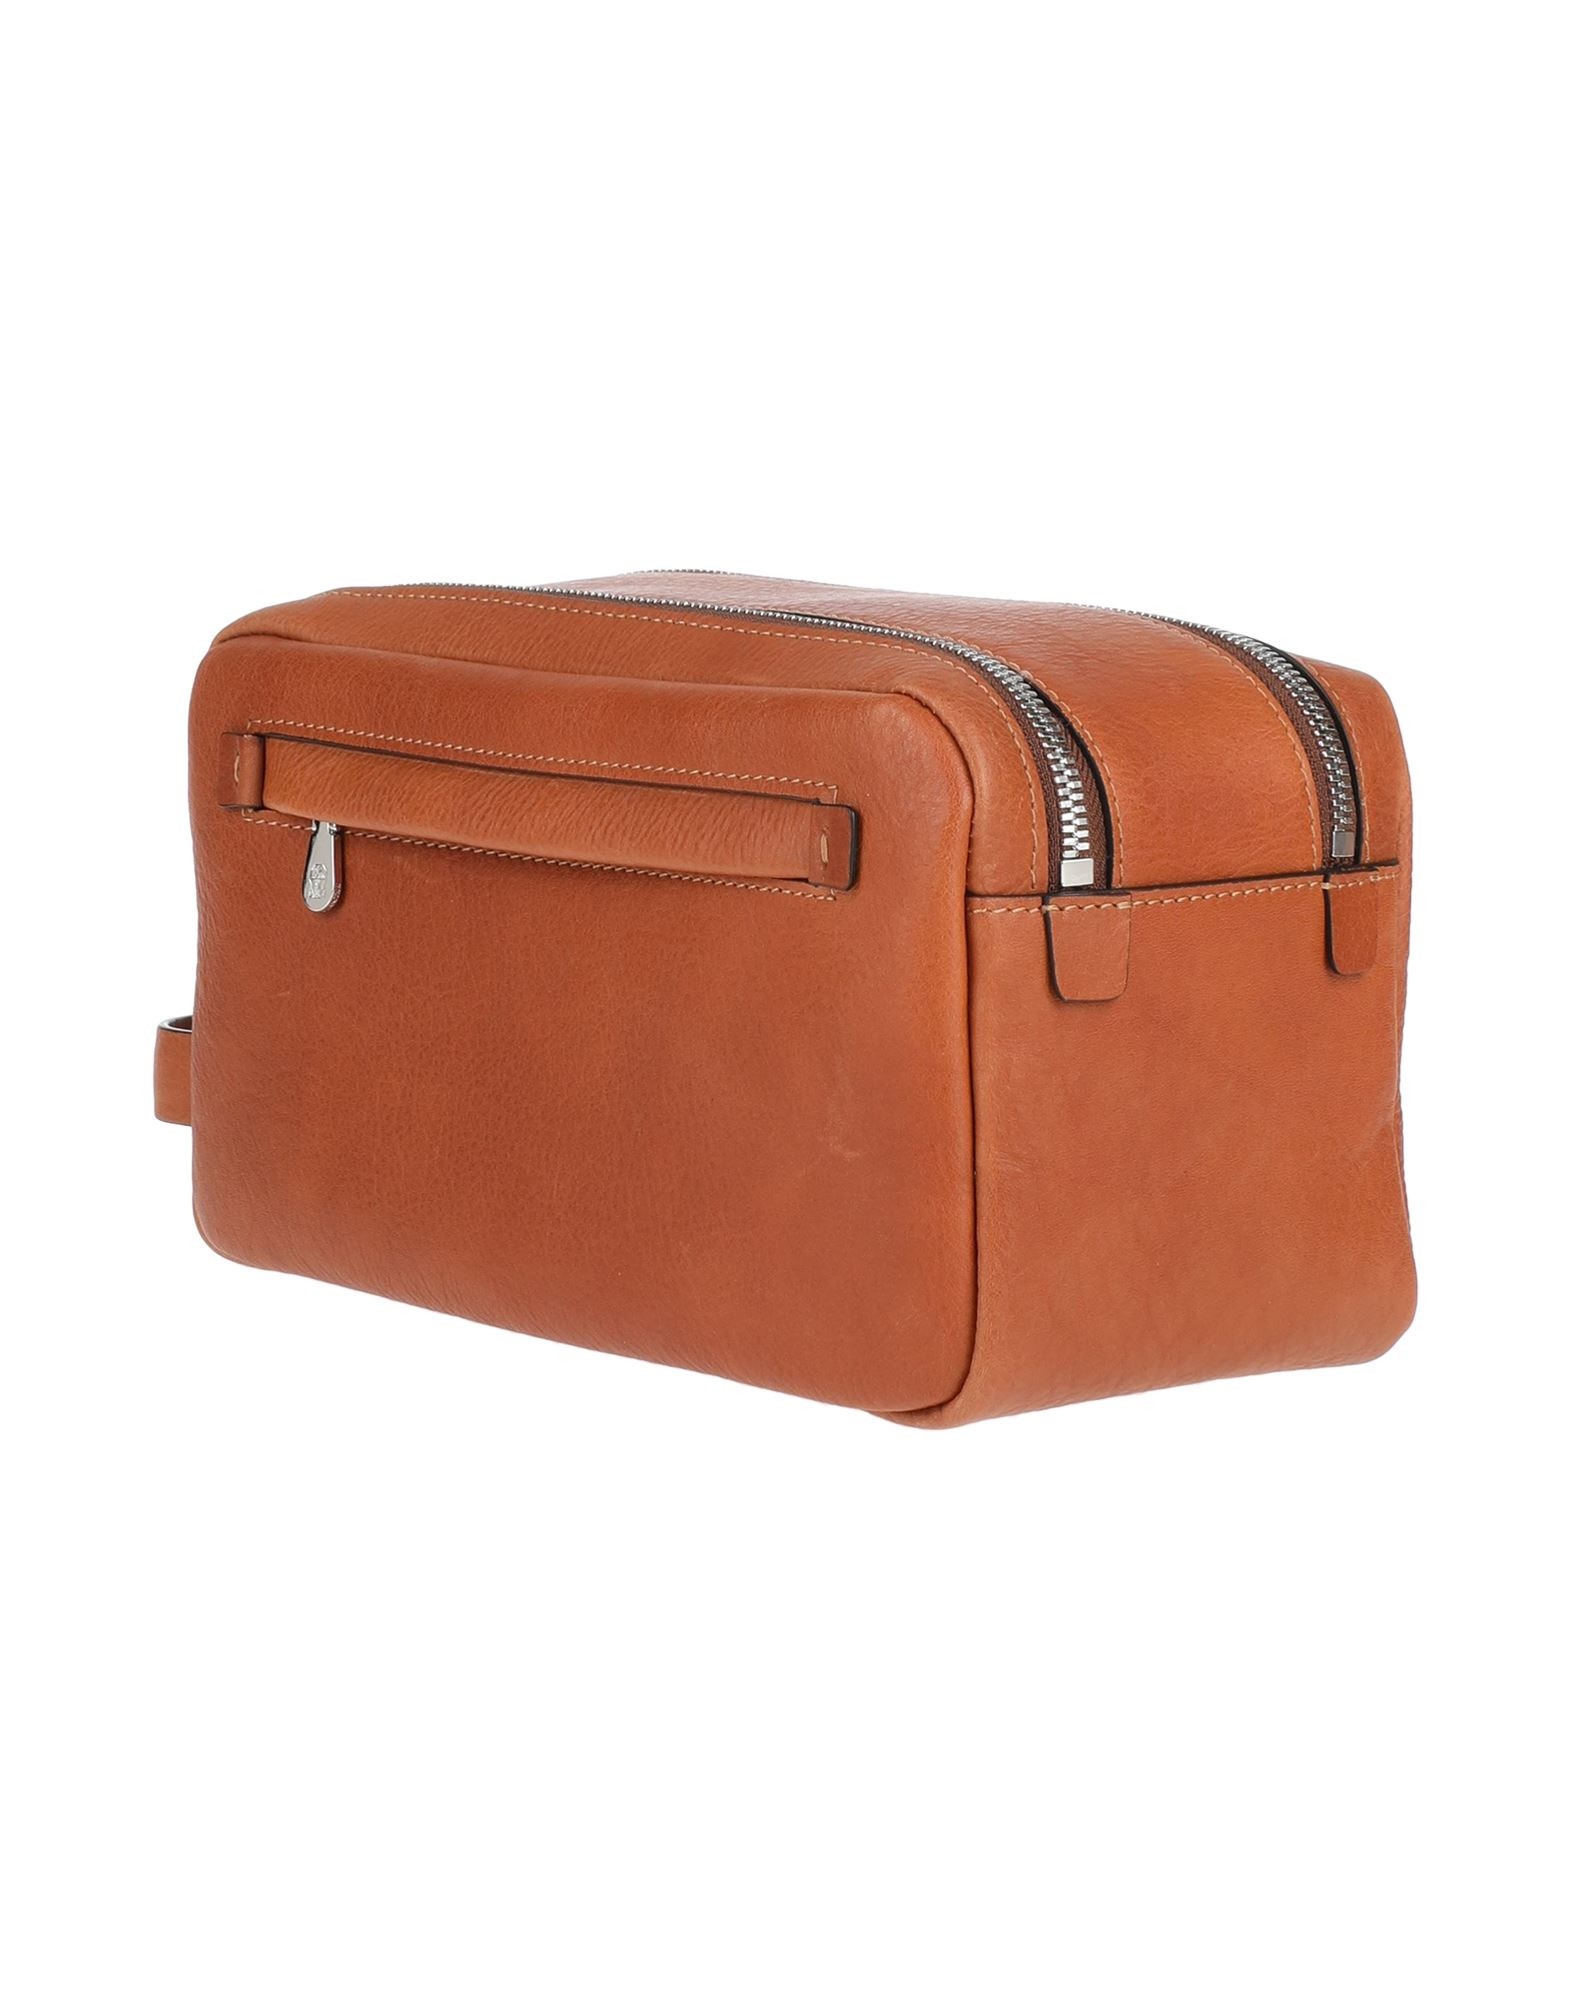 BRUNELLO CUCINELLI Beauty cases. logo, solid color, bag handle, fully lined, zipper closure, fully lined, contains non-textile parts of animal origin. Soft Leather